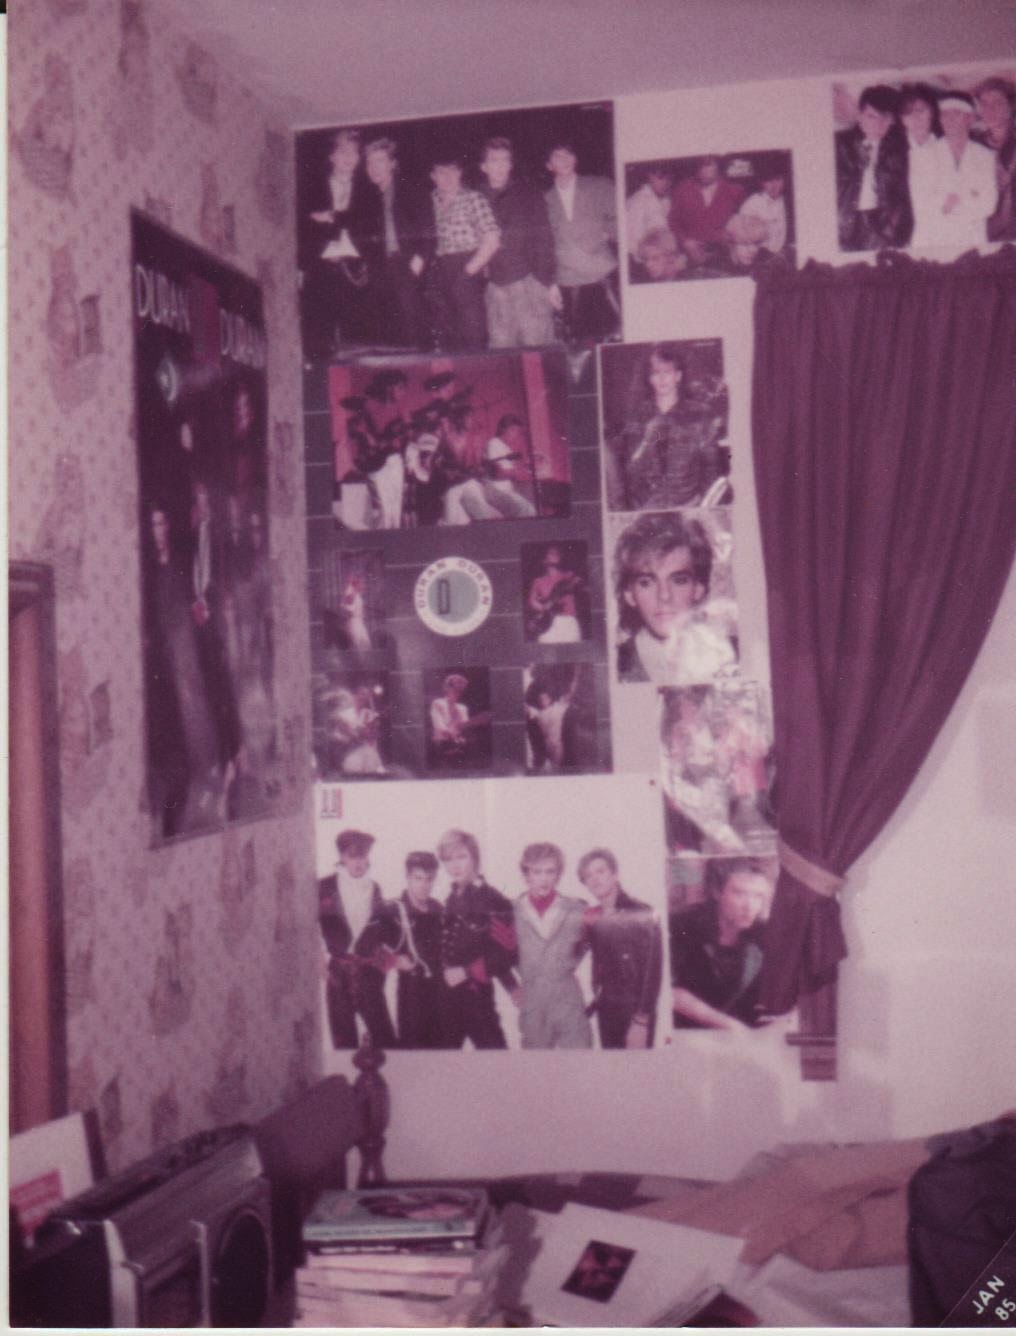 Duran Duran posters on a 1980s bedroom wall